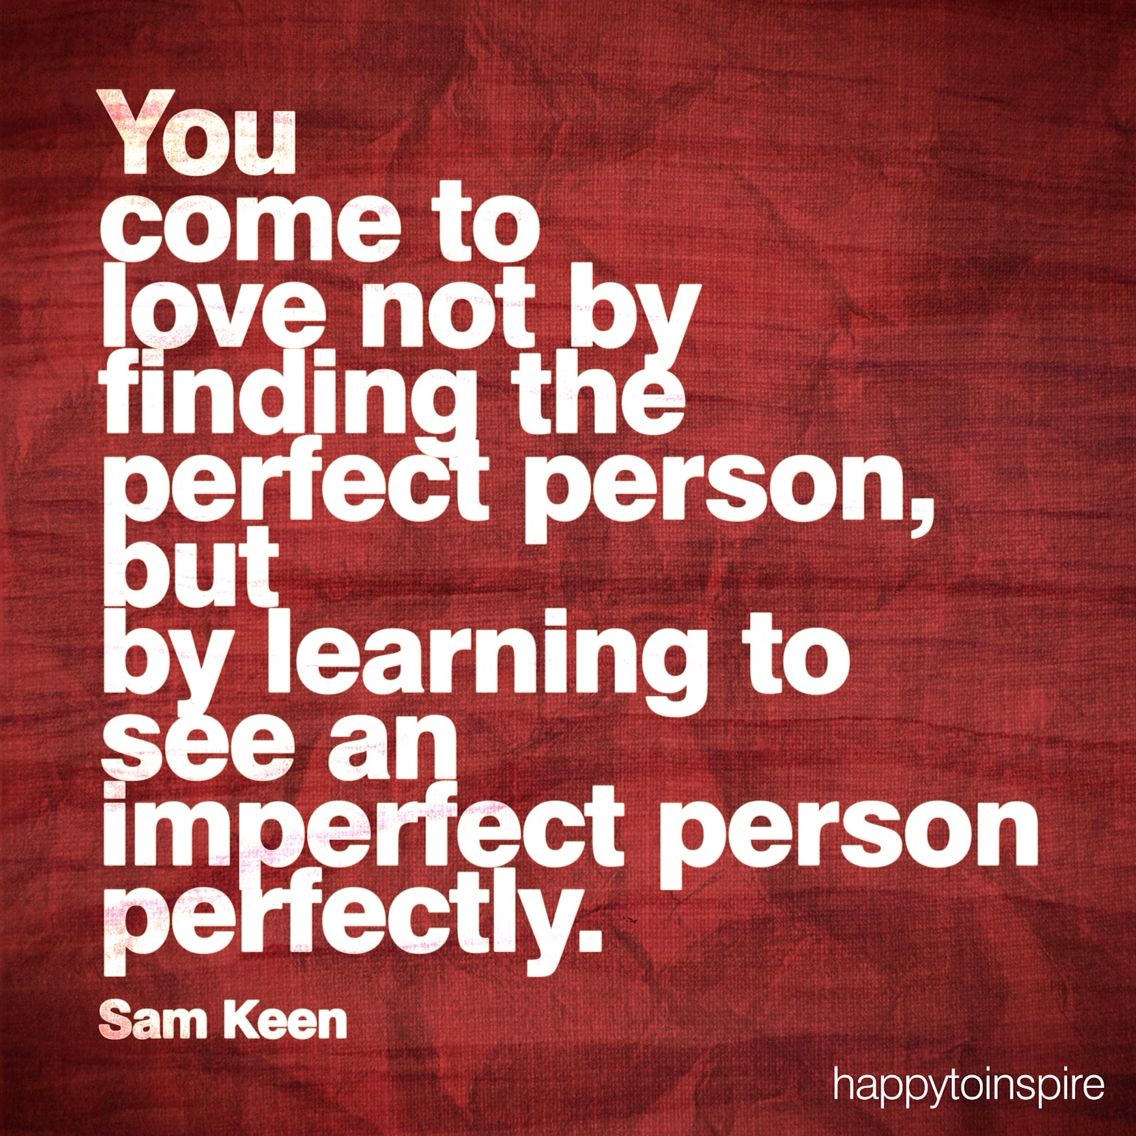 You come to learn to see an imperfect person perfectly..